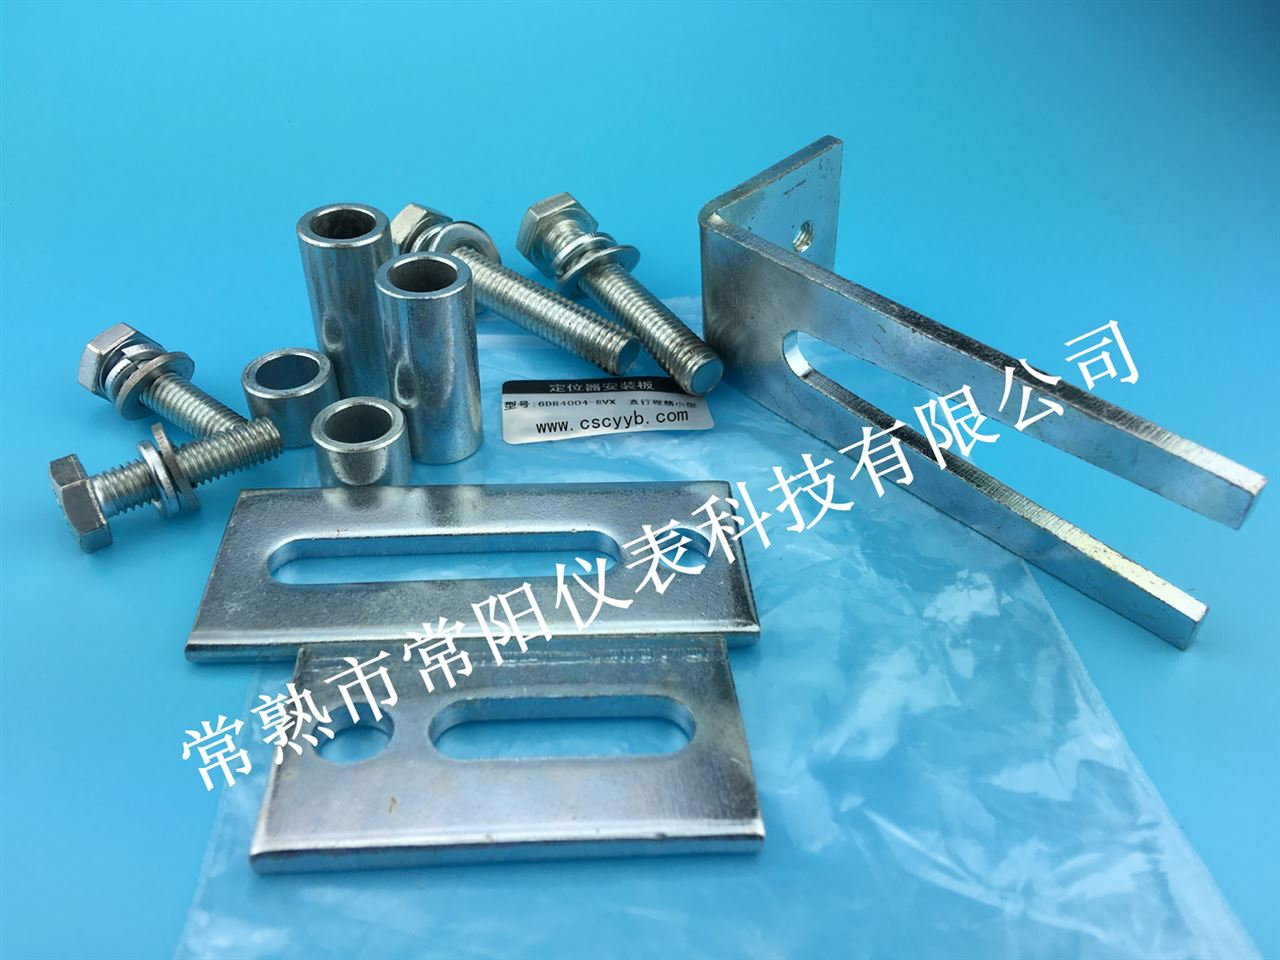 <strong><strong><strong><strong>6DR4004-8VX可调型西门子定位器安装支架</strong></strong></strong></strong>